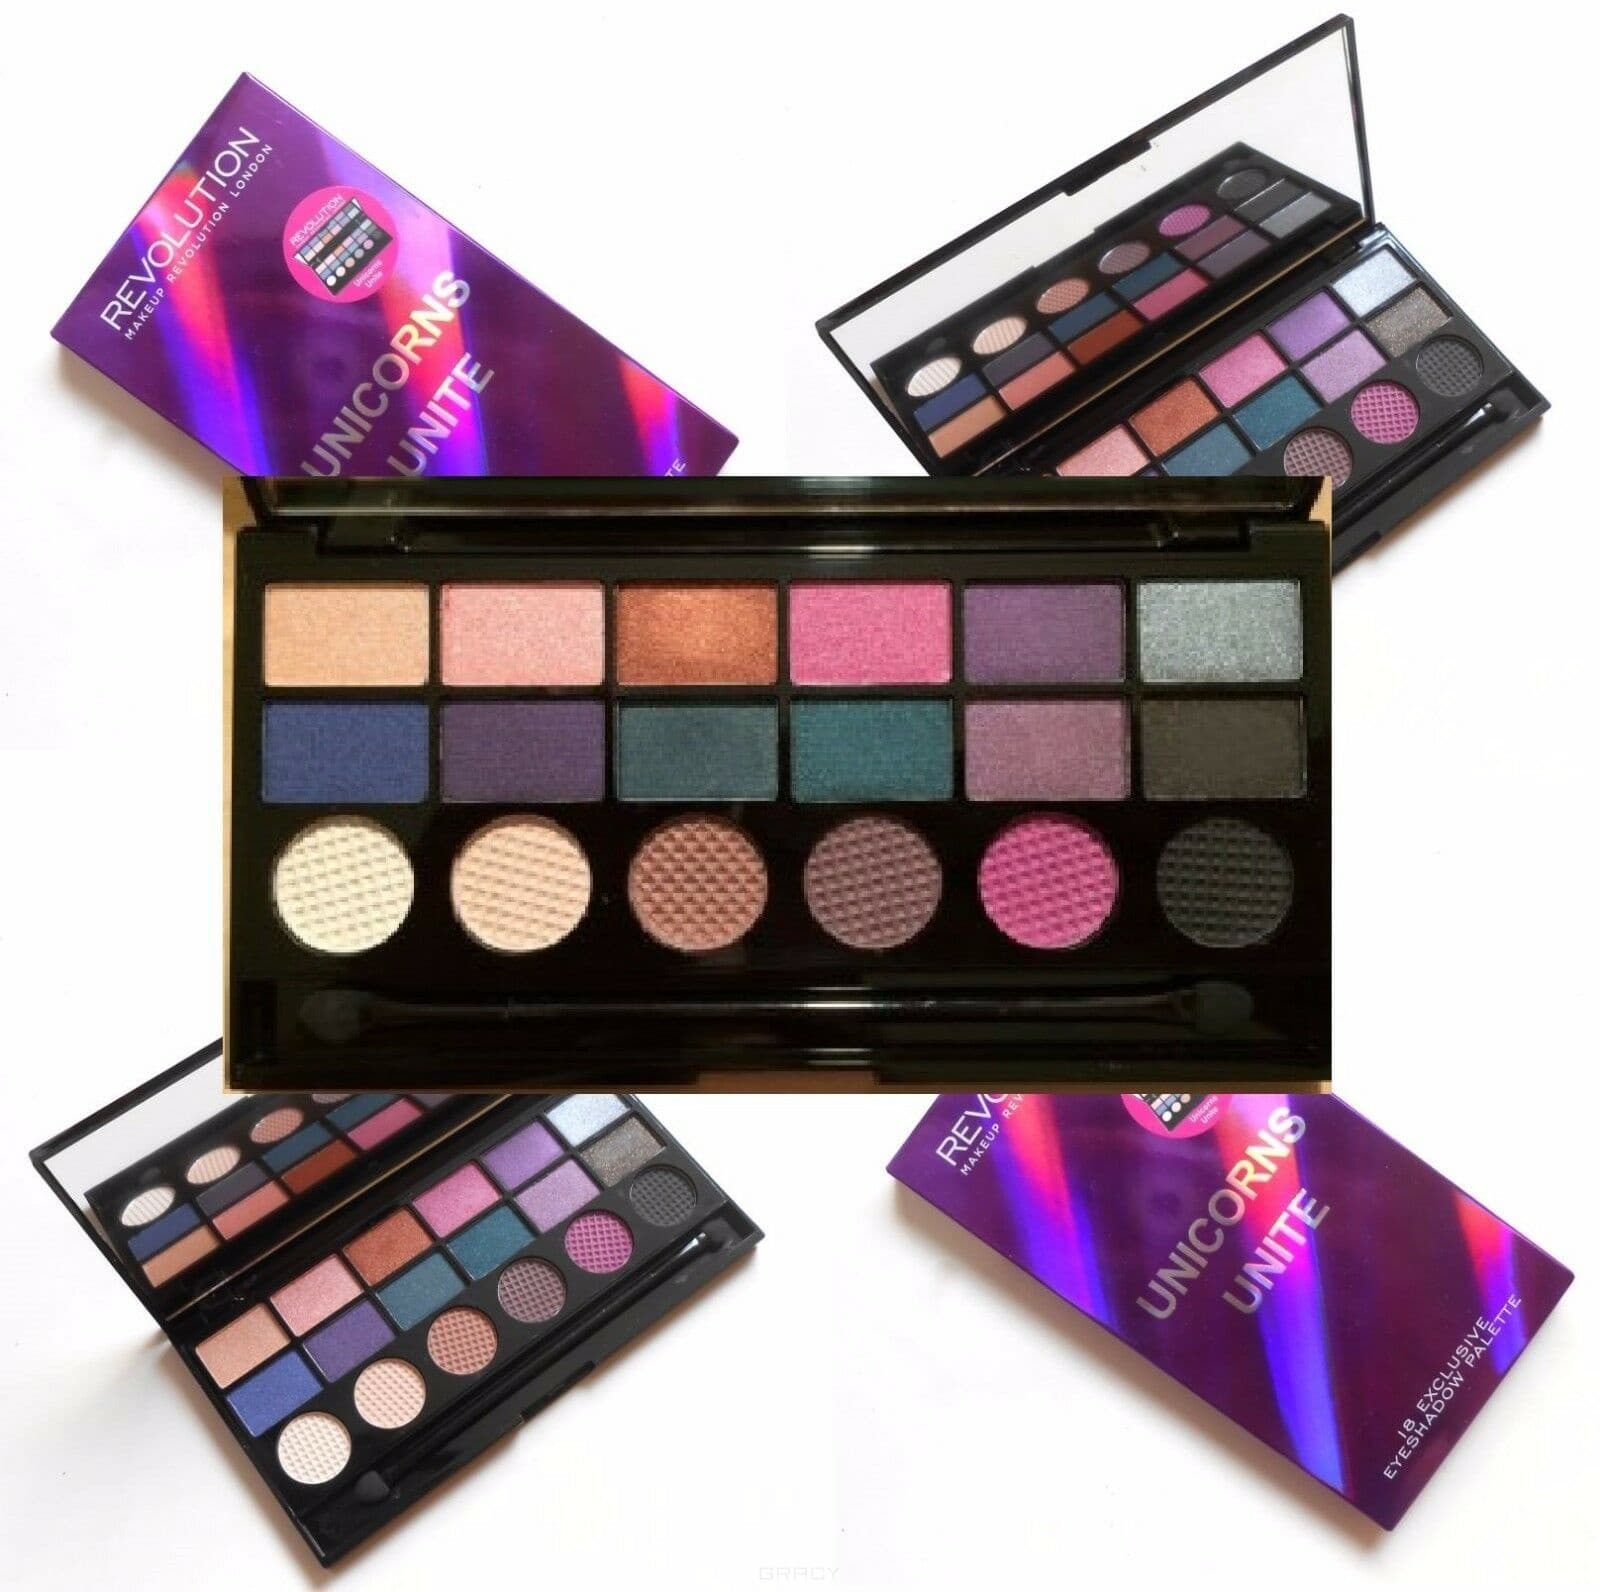 Купить MakeUp Revolution, Палетка теней Salvation Palette, 13 гр (2 варианта), Hard Day